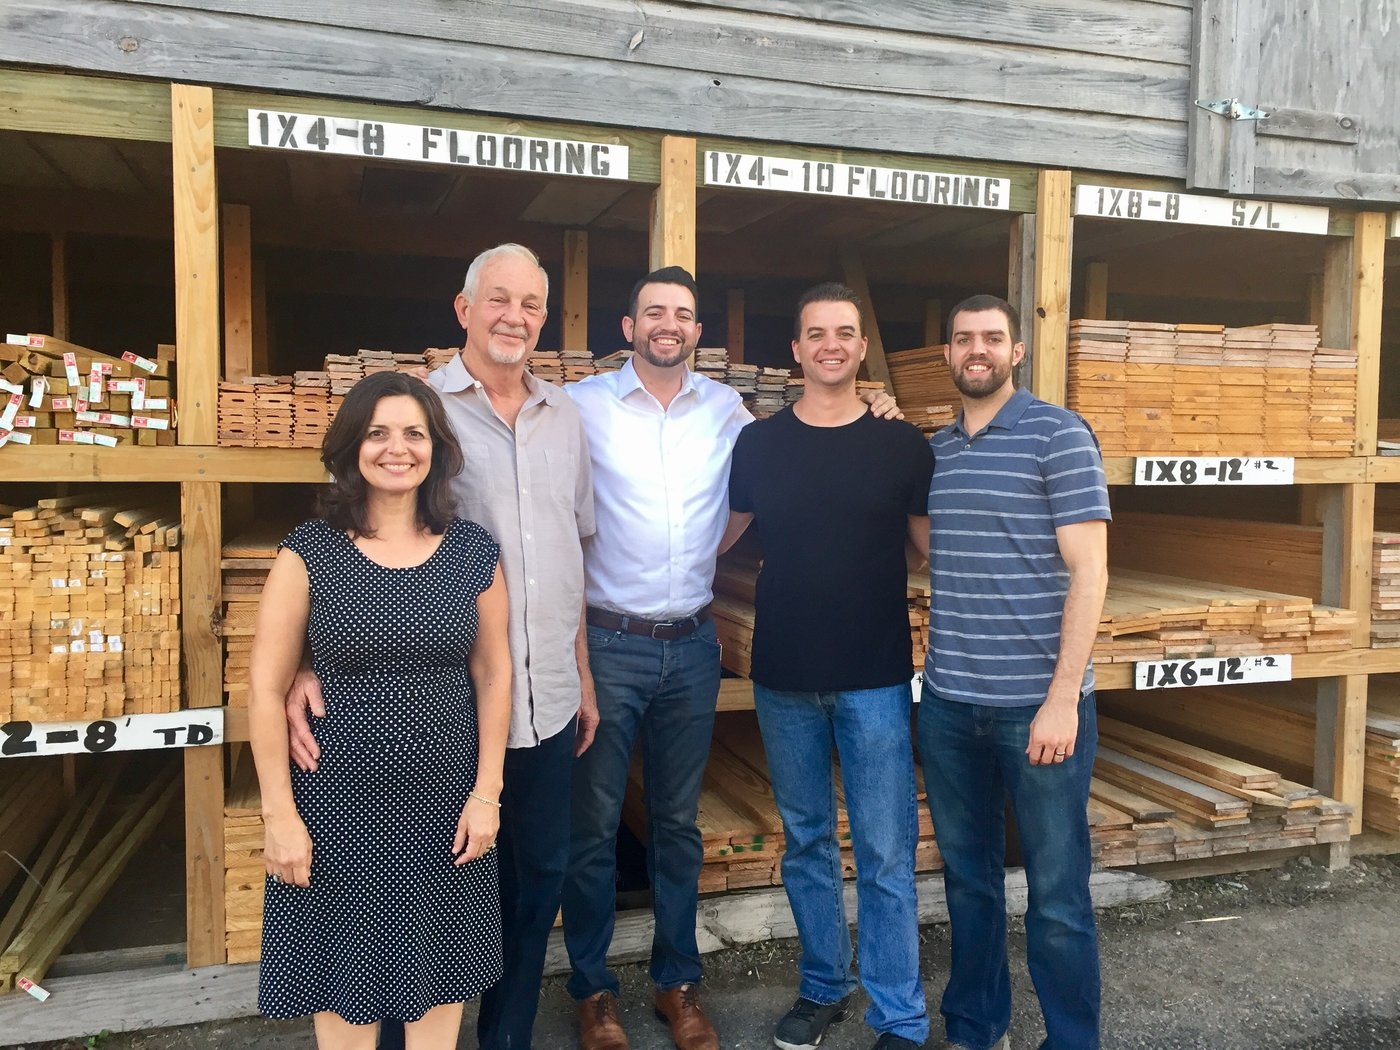 Diana and Danny Smith purchased Matt's Building Materials in 2002 and have turned over many of the day-to-day responsibilities to their sons Isaac, Jeremy and Ben.